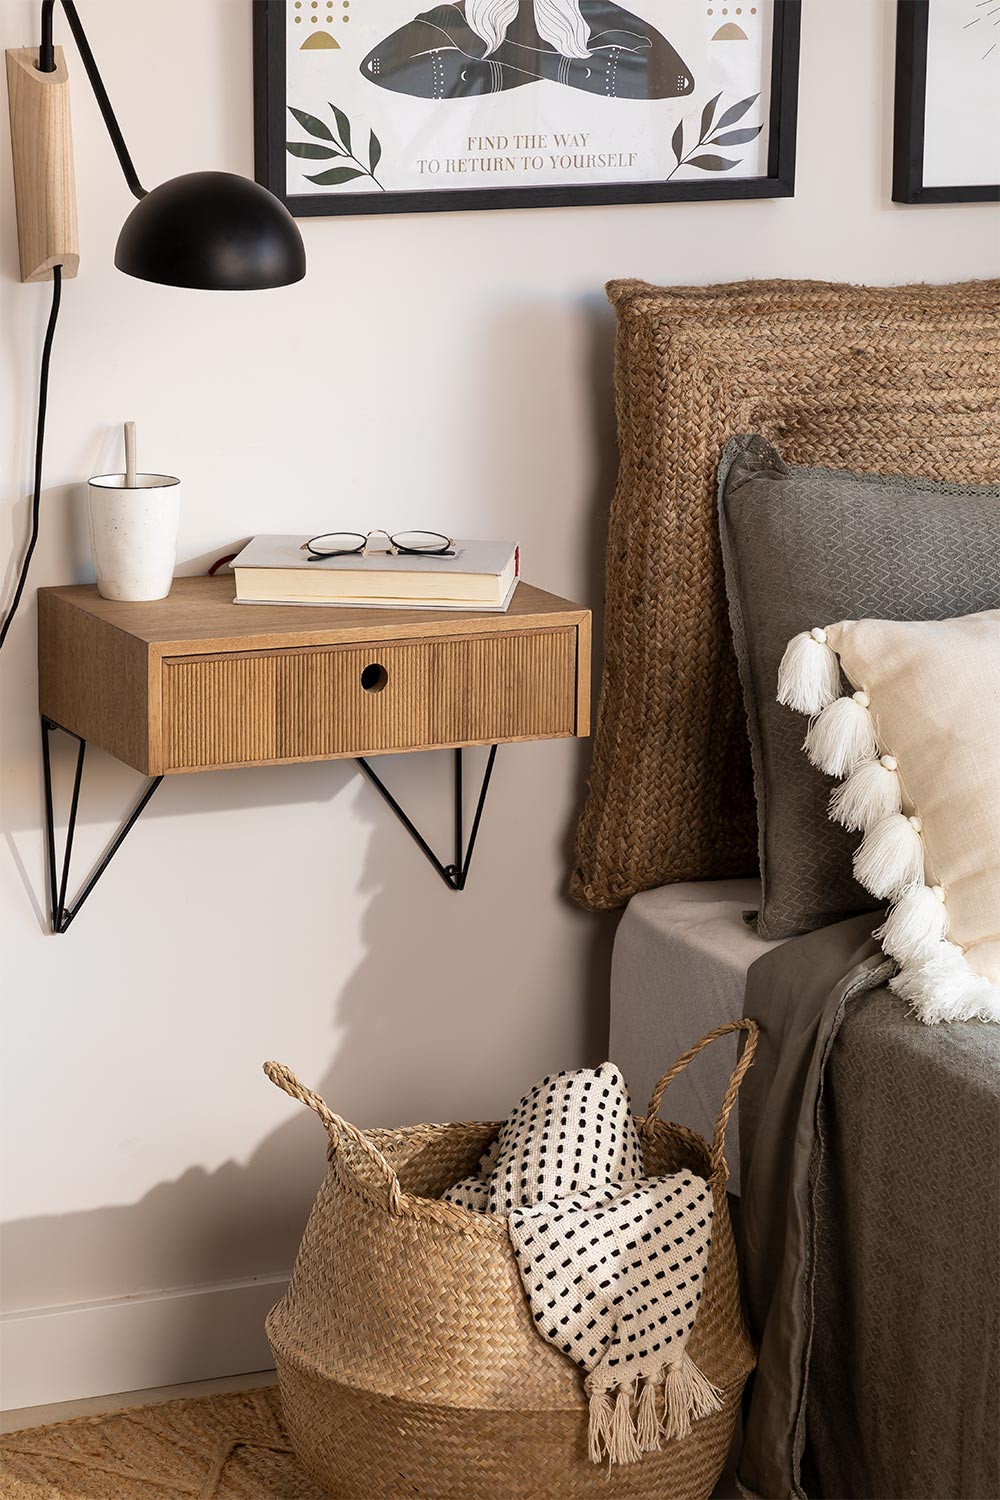 Wall-mounted Bedside Table with Drawer in Ash Wood 41 cm Glai, gallery image 1